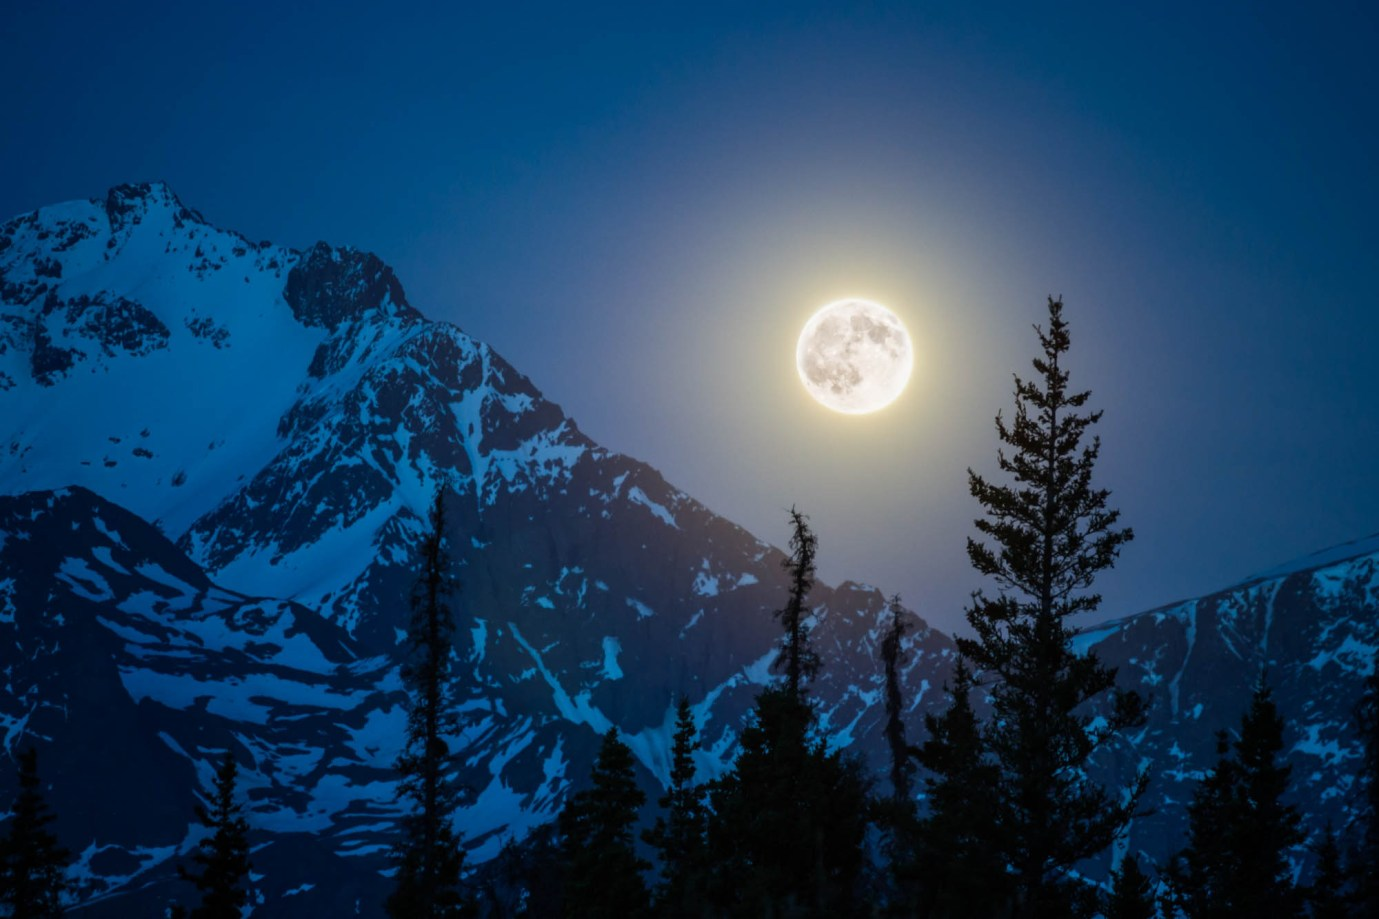 Full moon rises over the chugach mountains near Eagle River, Alaska. The sky is dark blue and there is snow on the mountain tops. Pine trees tops fill the foreground.